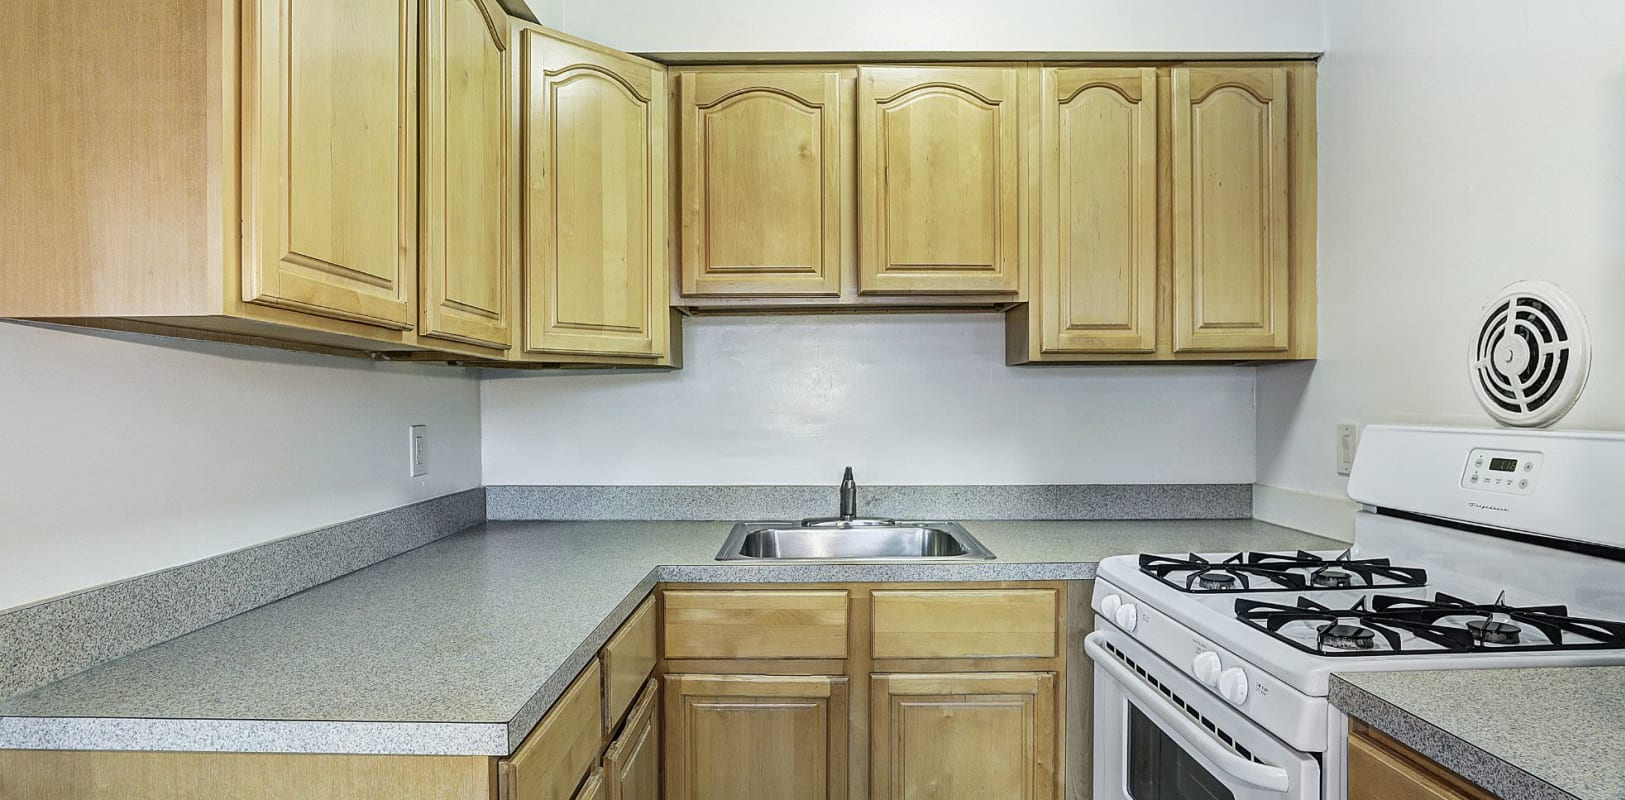 Kitchen with plenty of counter space at Garret Village Apartments in Clifton, New Jersey